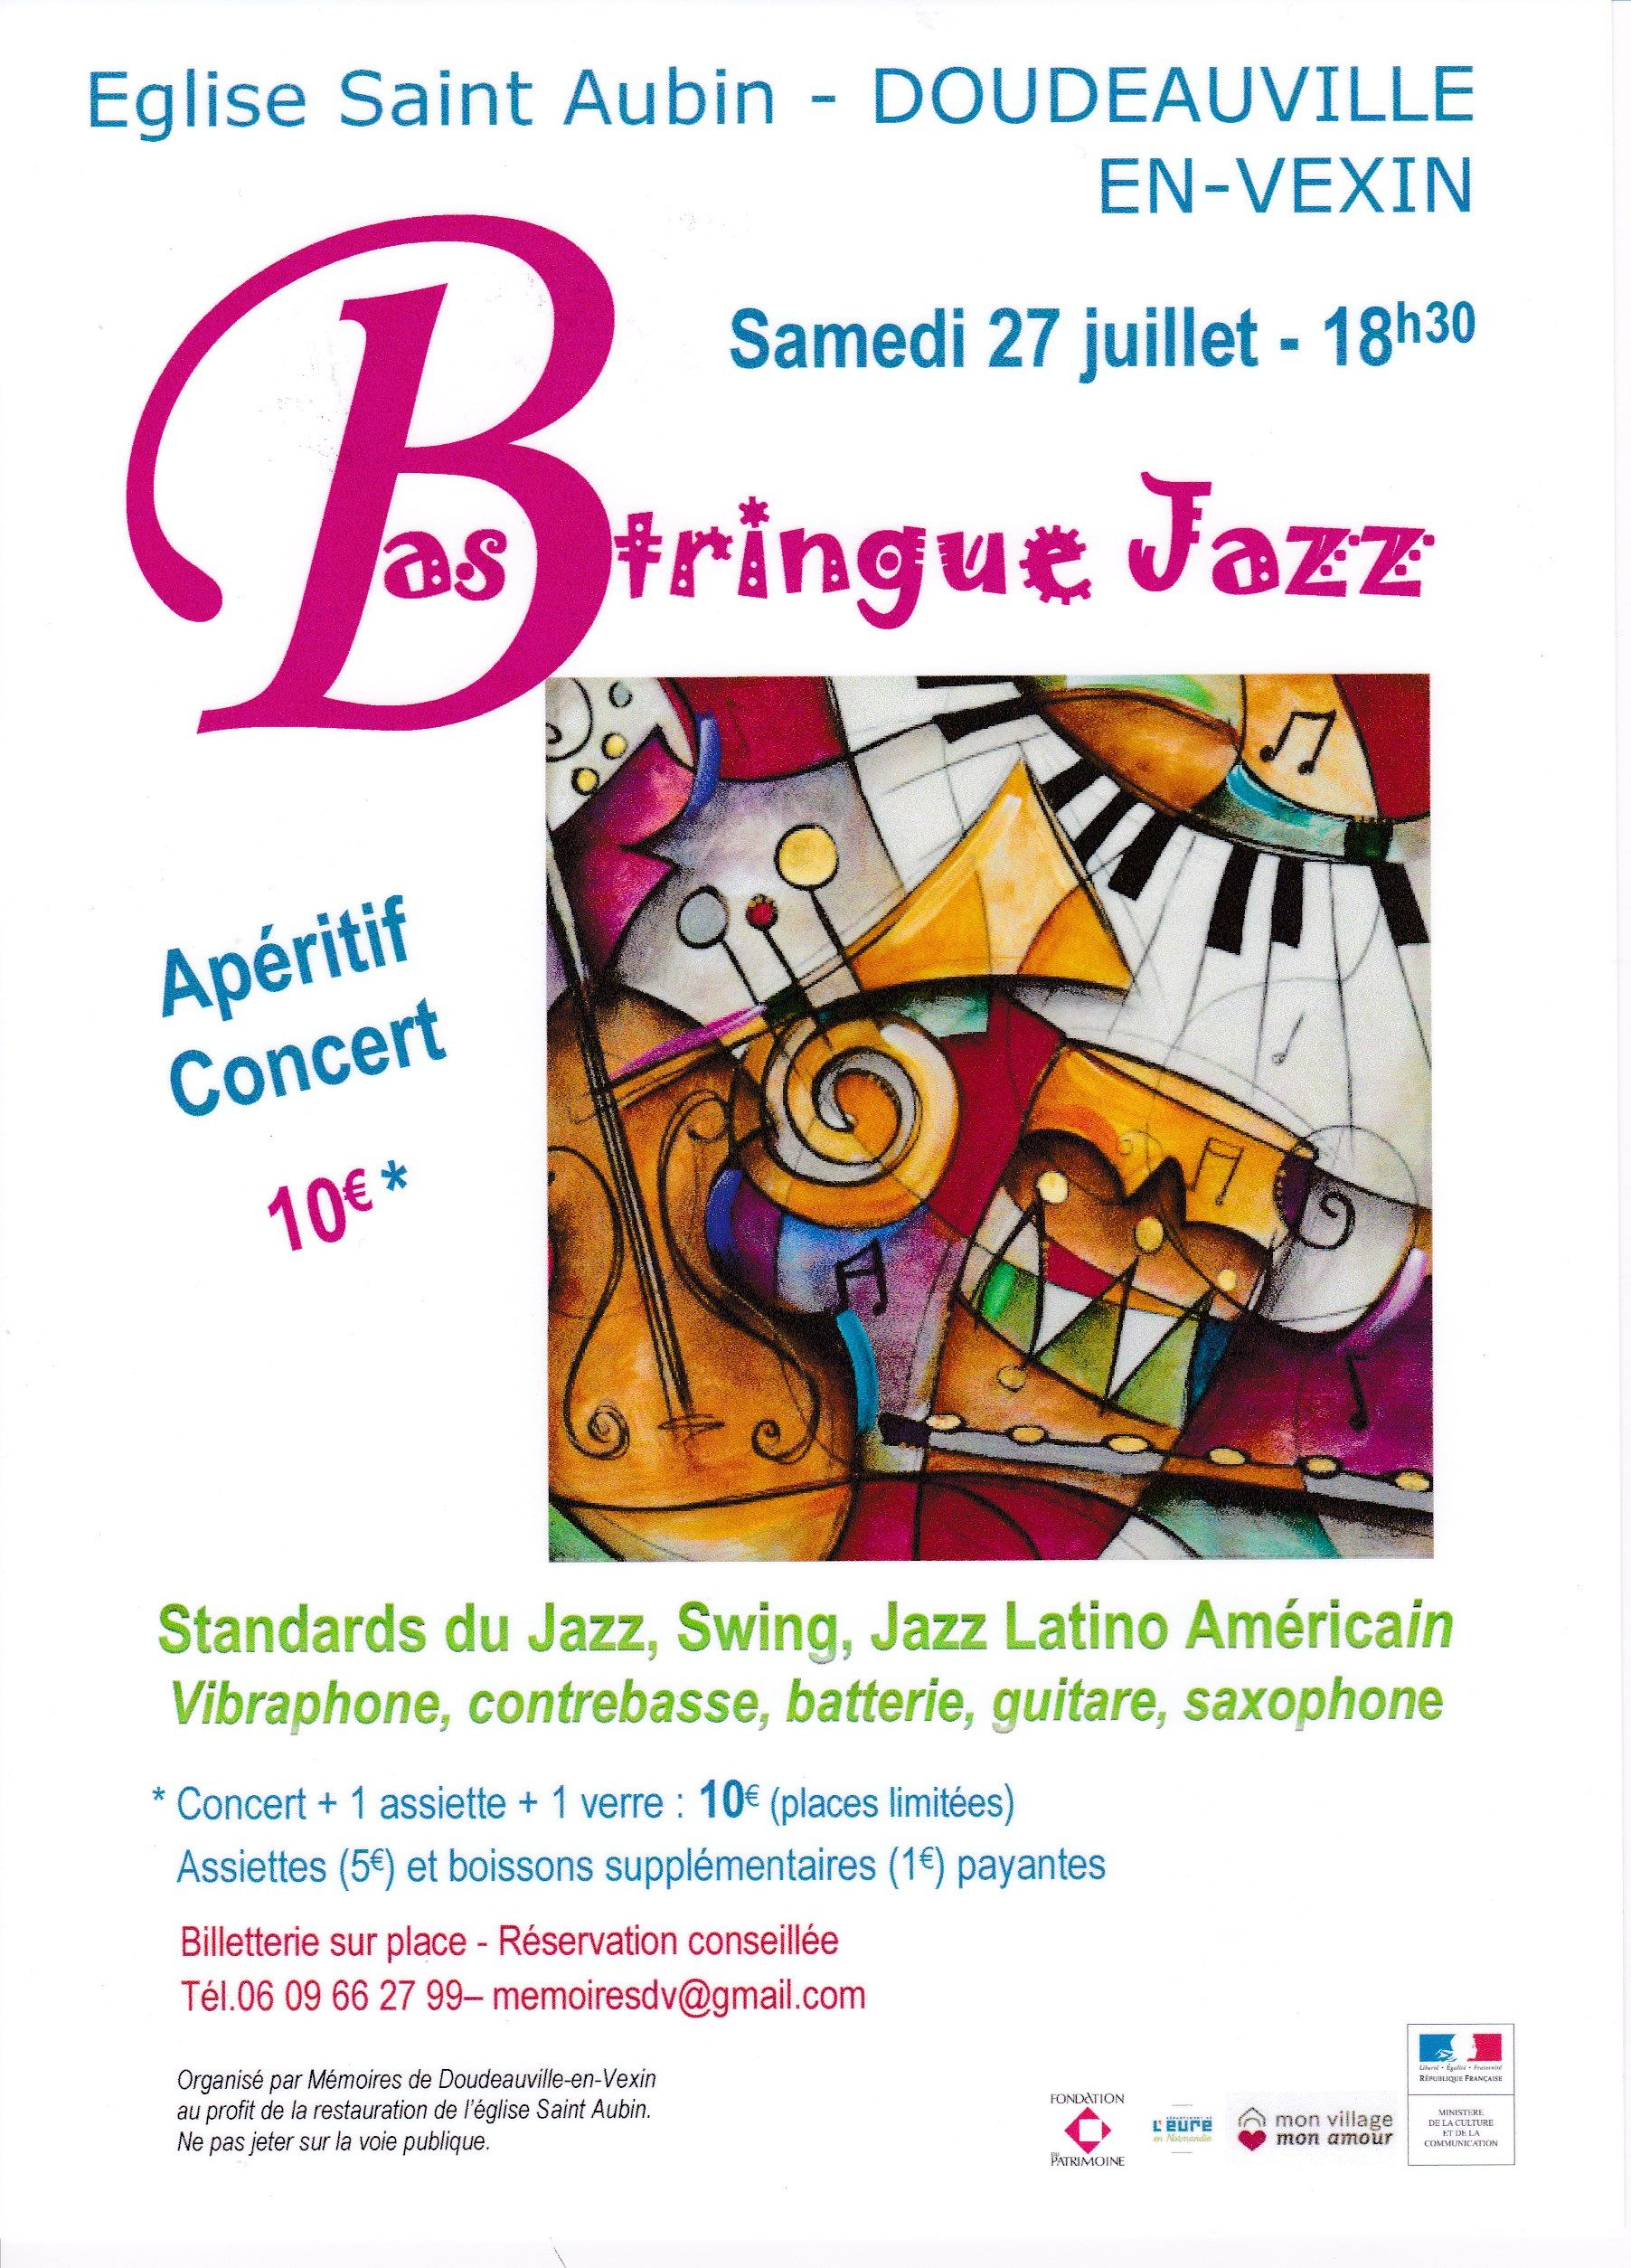 Bastringue jazz